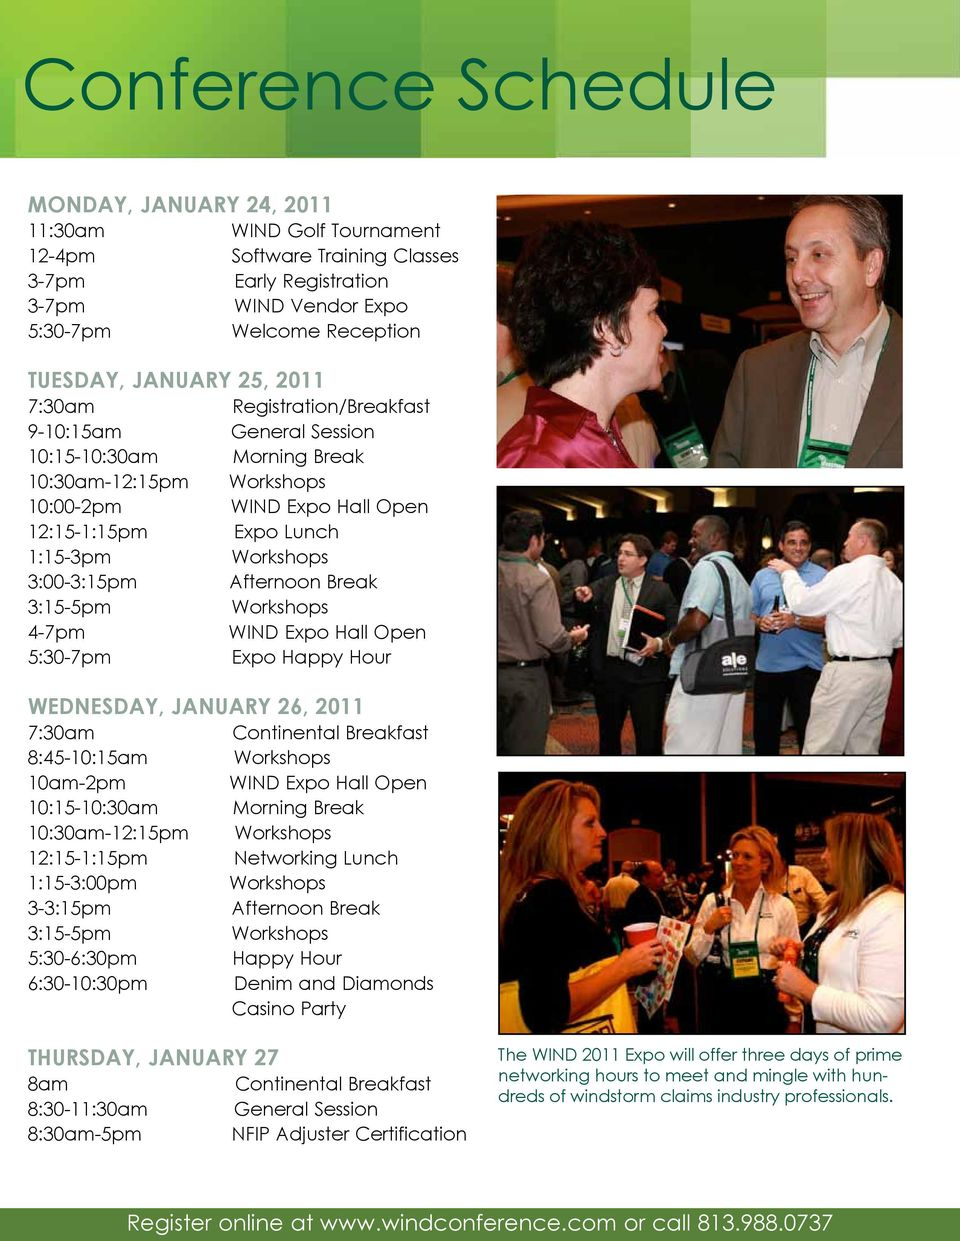 3:00-3:15pm Afternoon Break 3:15-5pm Workshops 4-7pm WIND Expo Hall Open 5:30-7pm Expo Happy Hour WEDNESDAY, JANUARY 26, 2011 7:30am Continental Breakfast 8:45-10:15am Workshops 10am-2pm WIND Expo